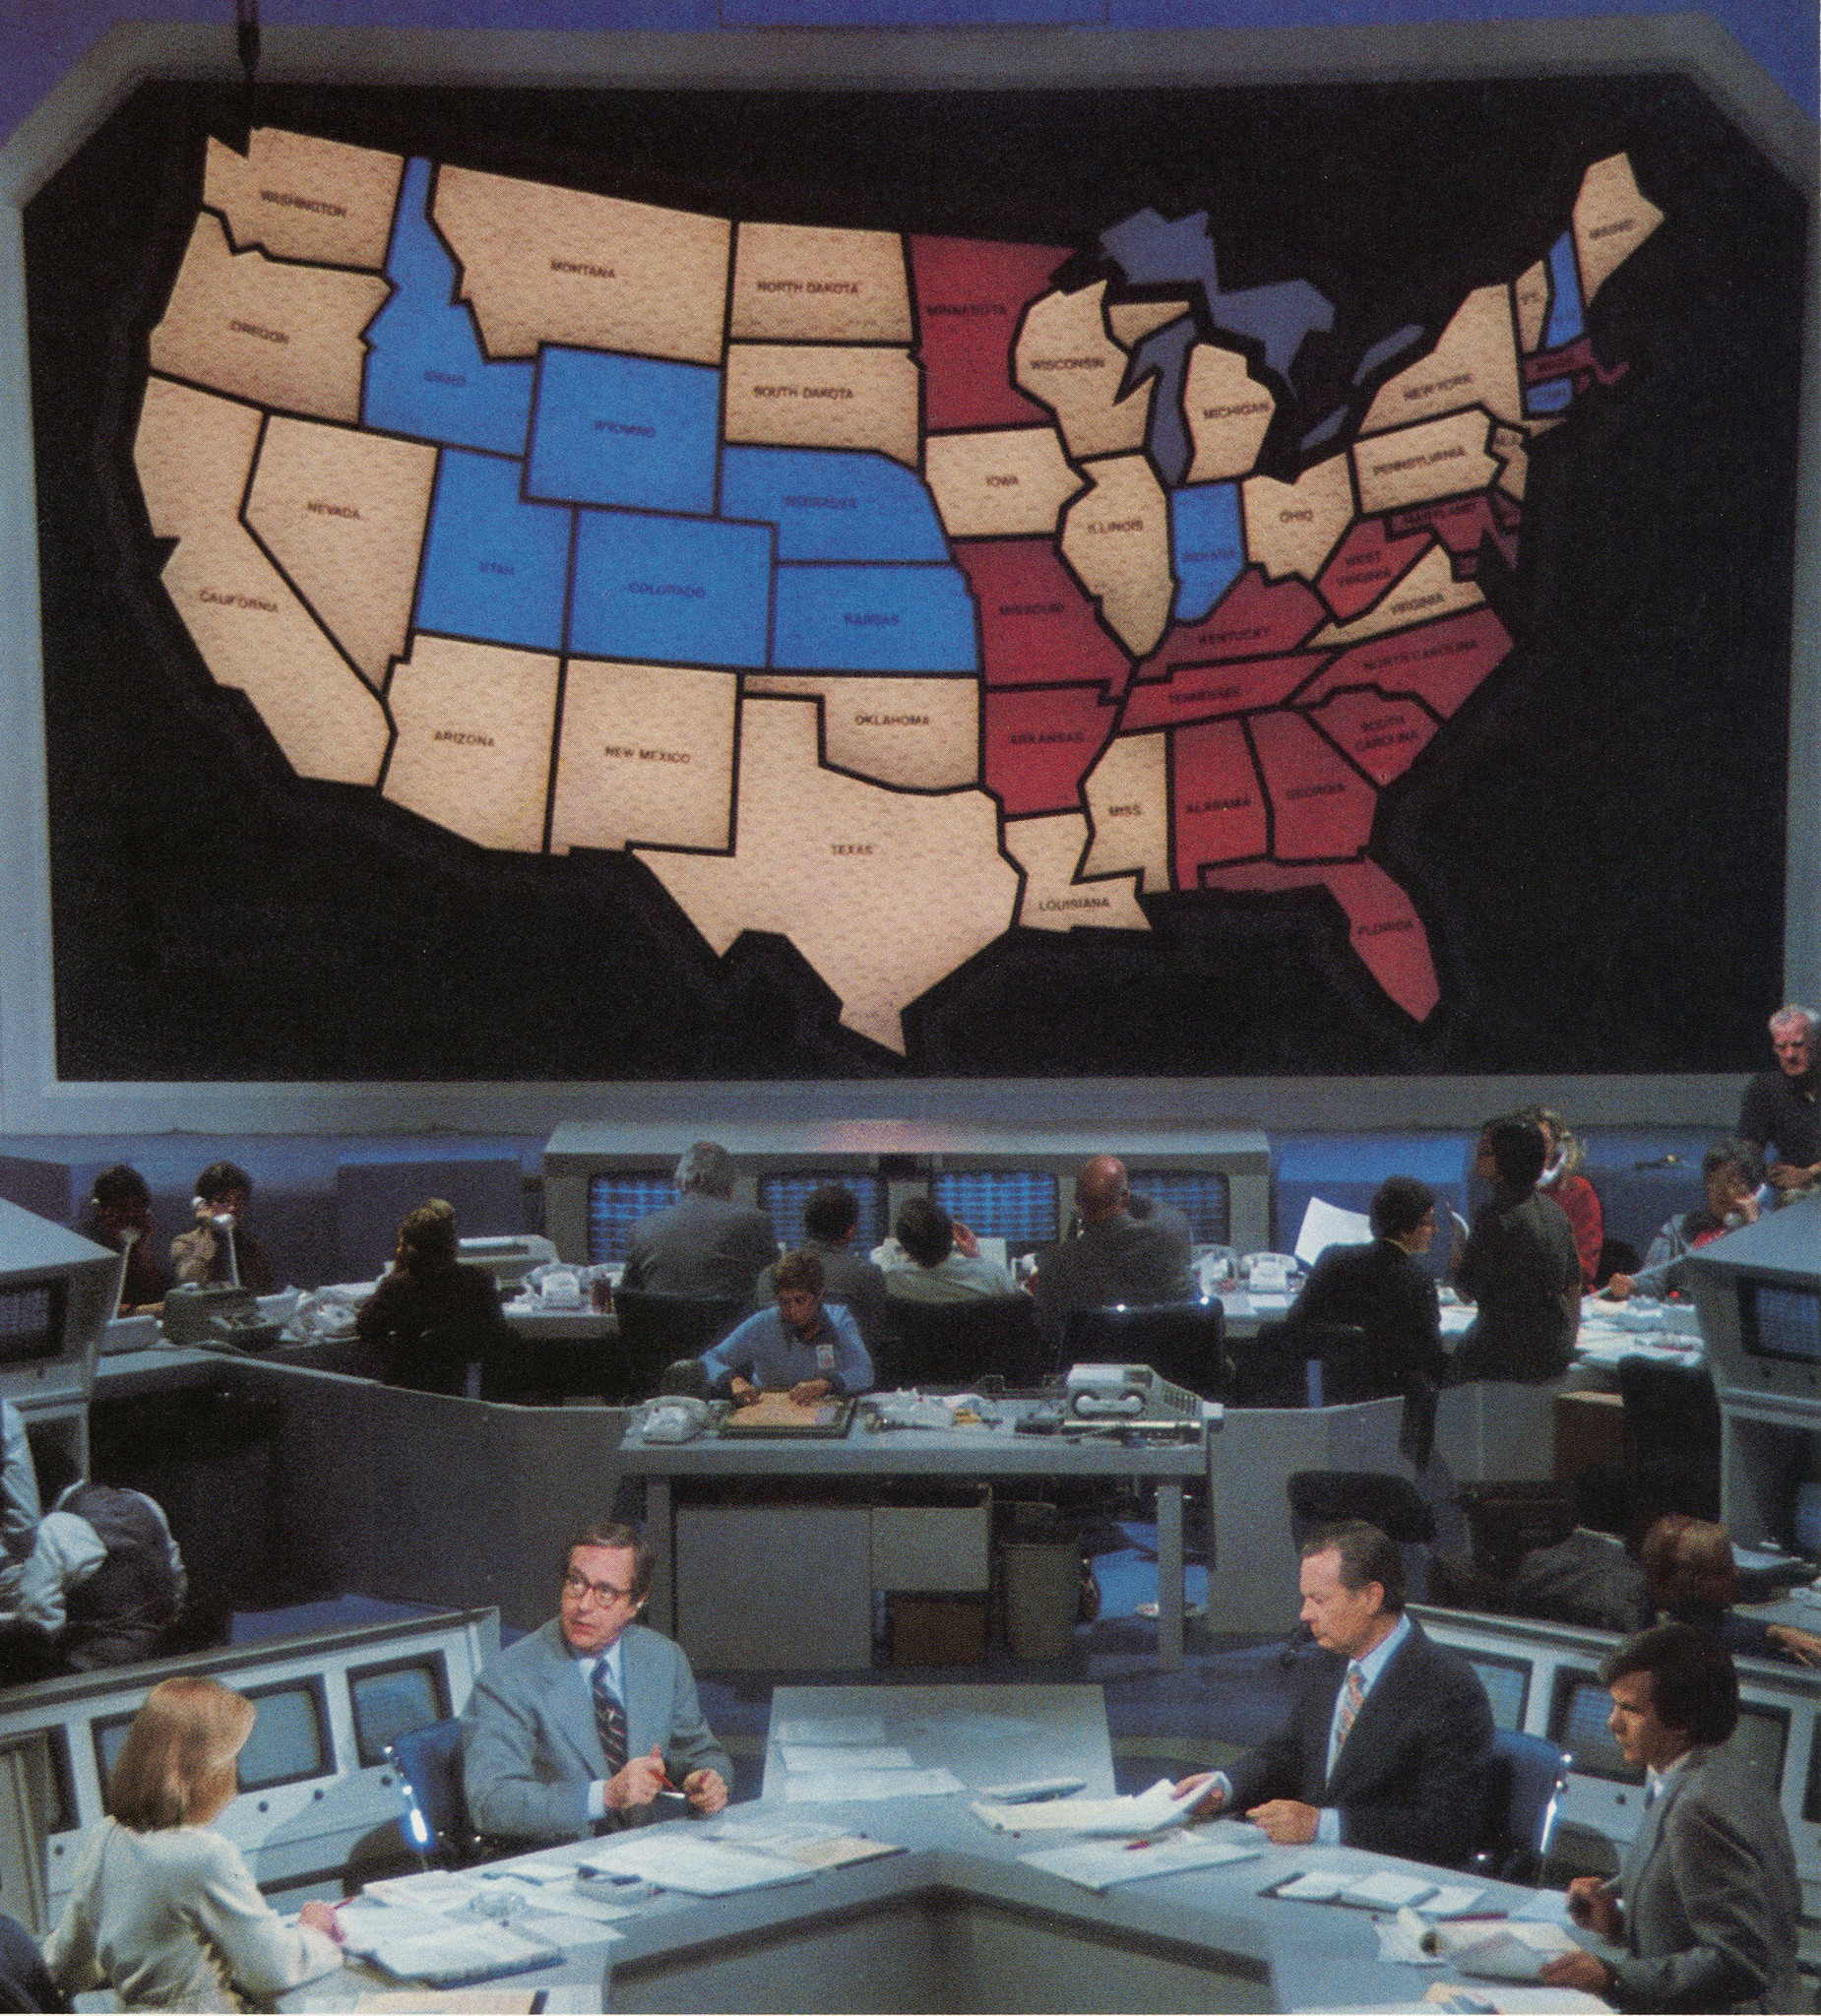 The original NBC electoral map, first seen on Nov. 2, 1976. Pictured, from left, Cassie Mackin, John Chancellor, David Brinkley, and Tom Brokaw.